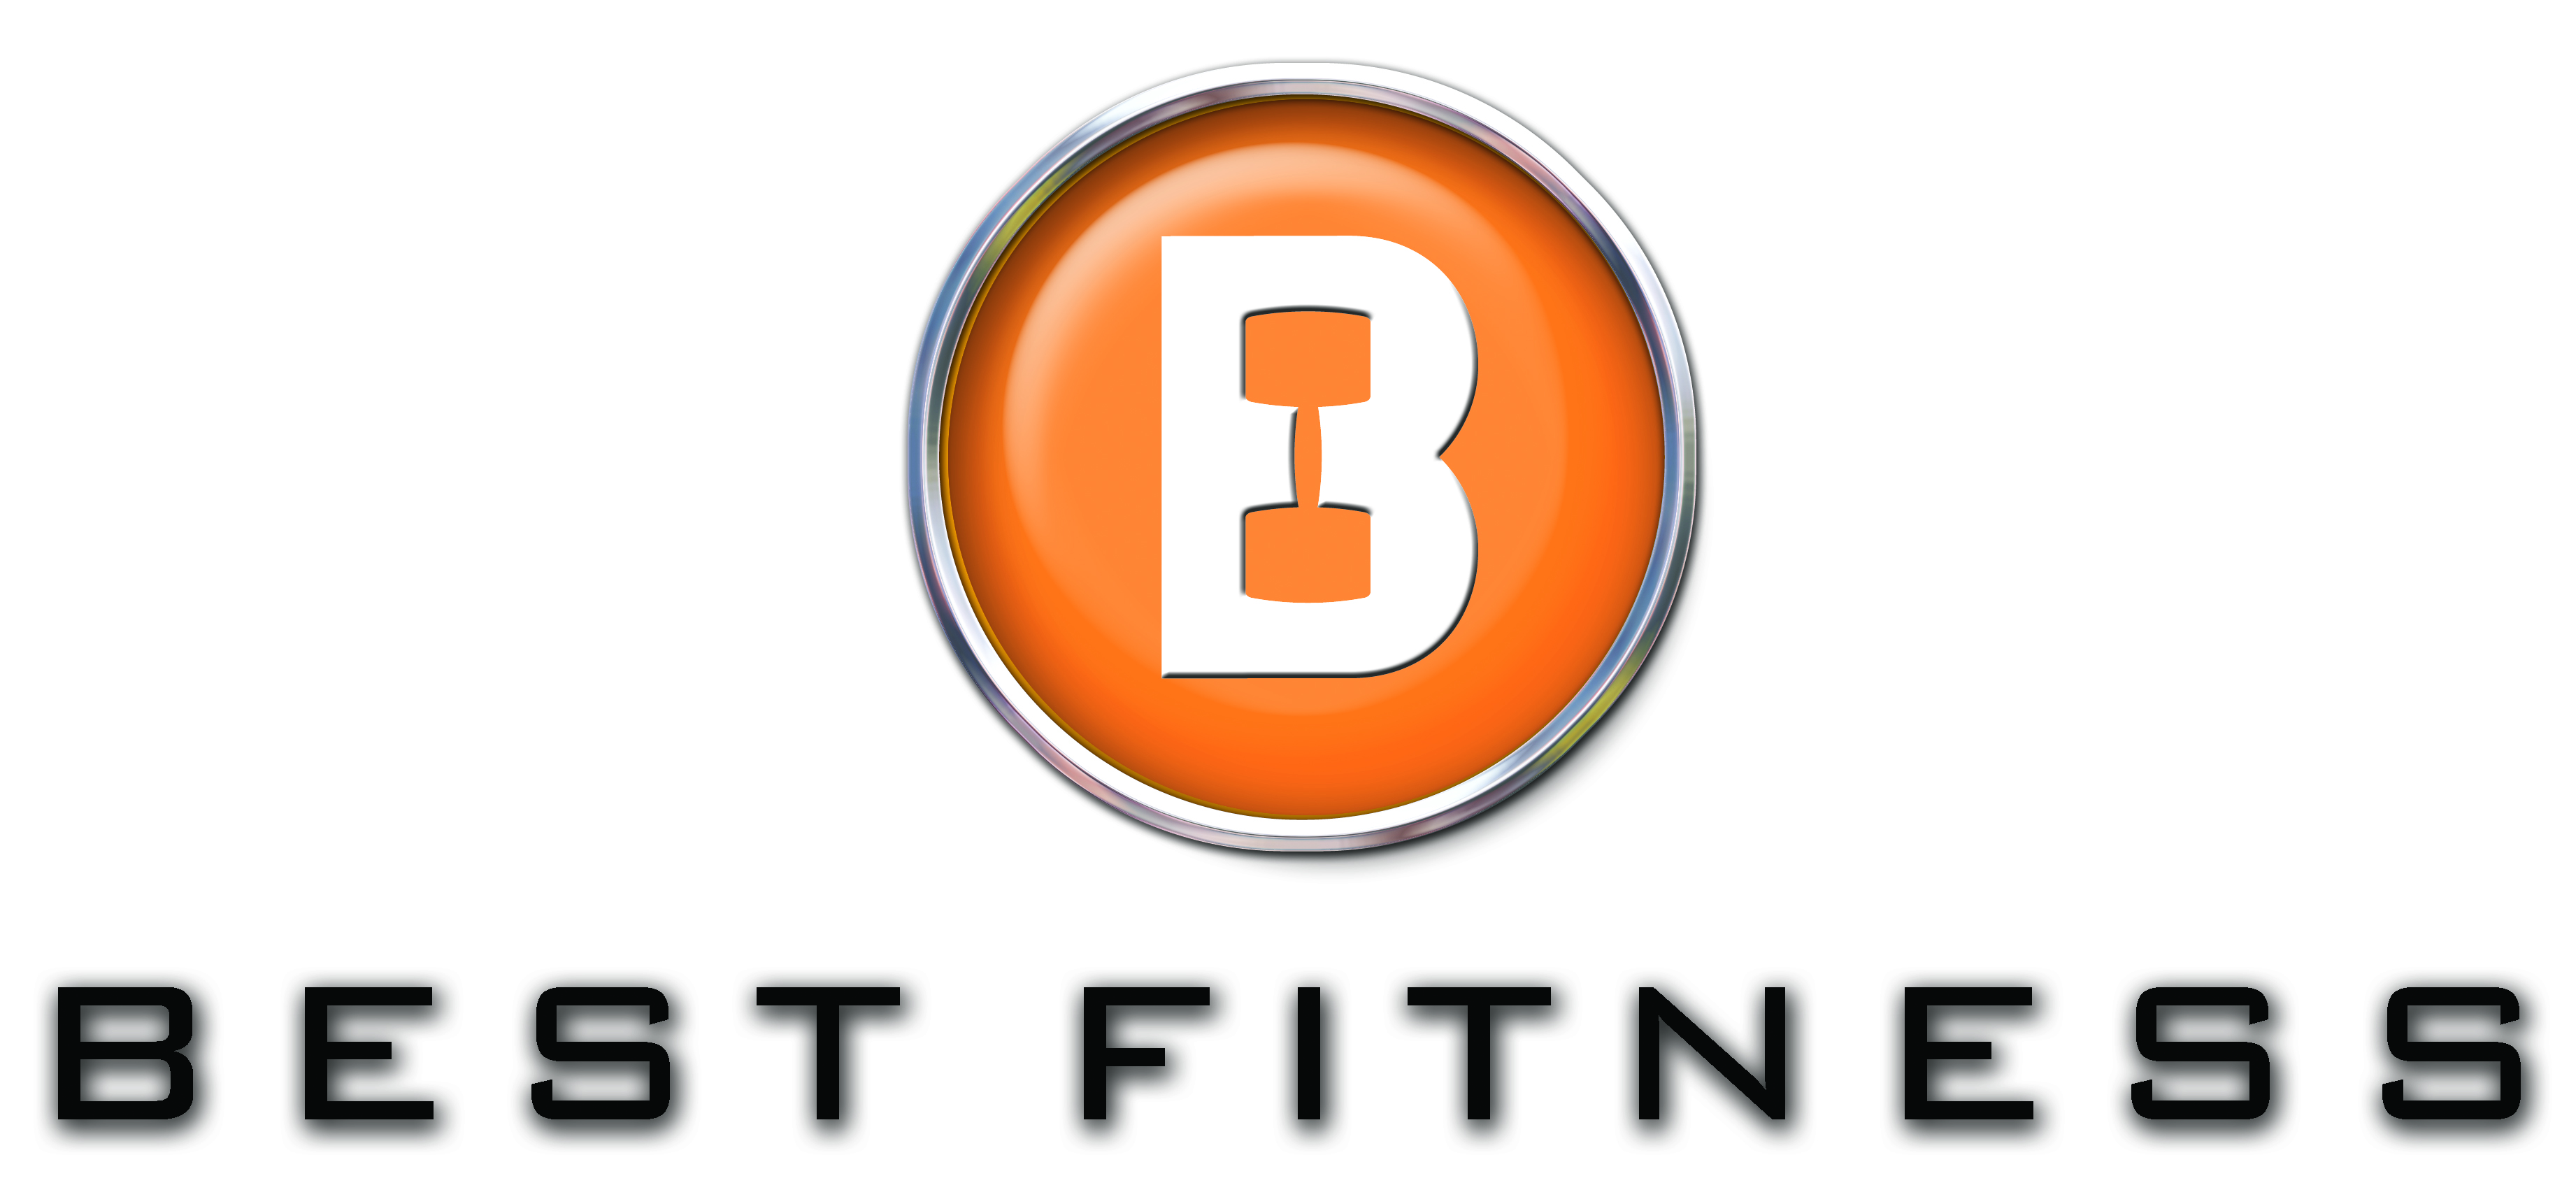 Best Fitness Opens Its Eleventh Location